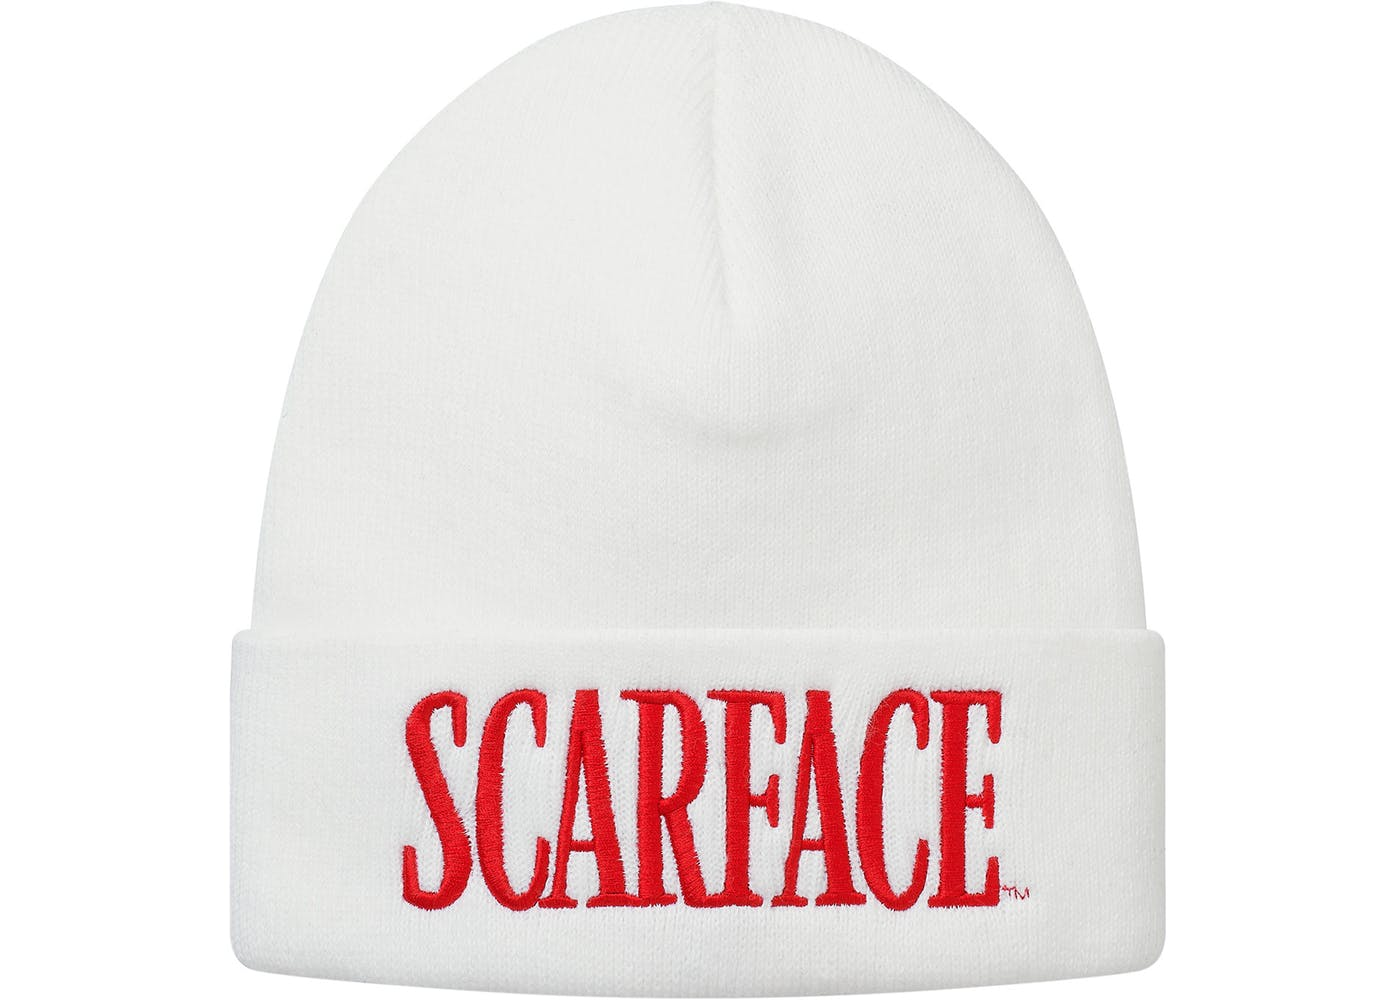 White Supreme Scarface Beanie Stockx News